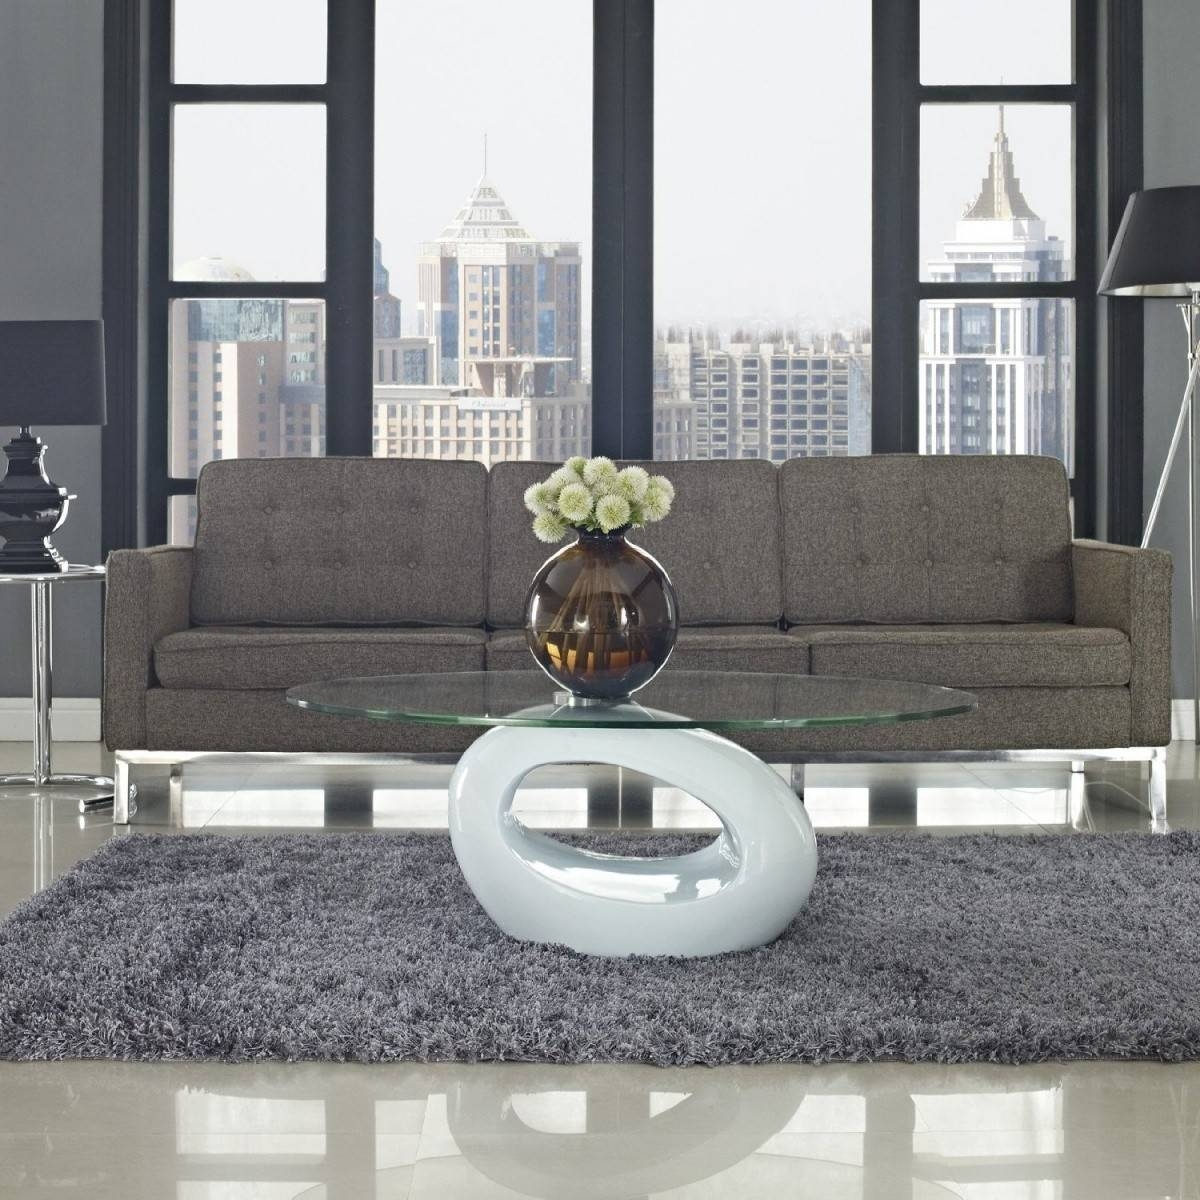 Incredible Glass Living Room Table Design – Glass Coffee Table pertaining to Modern Glass Coffee Tables (Image 16 of 30)